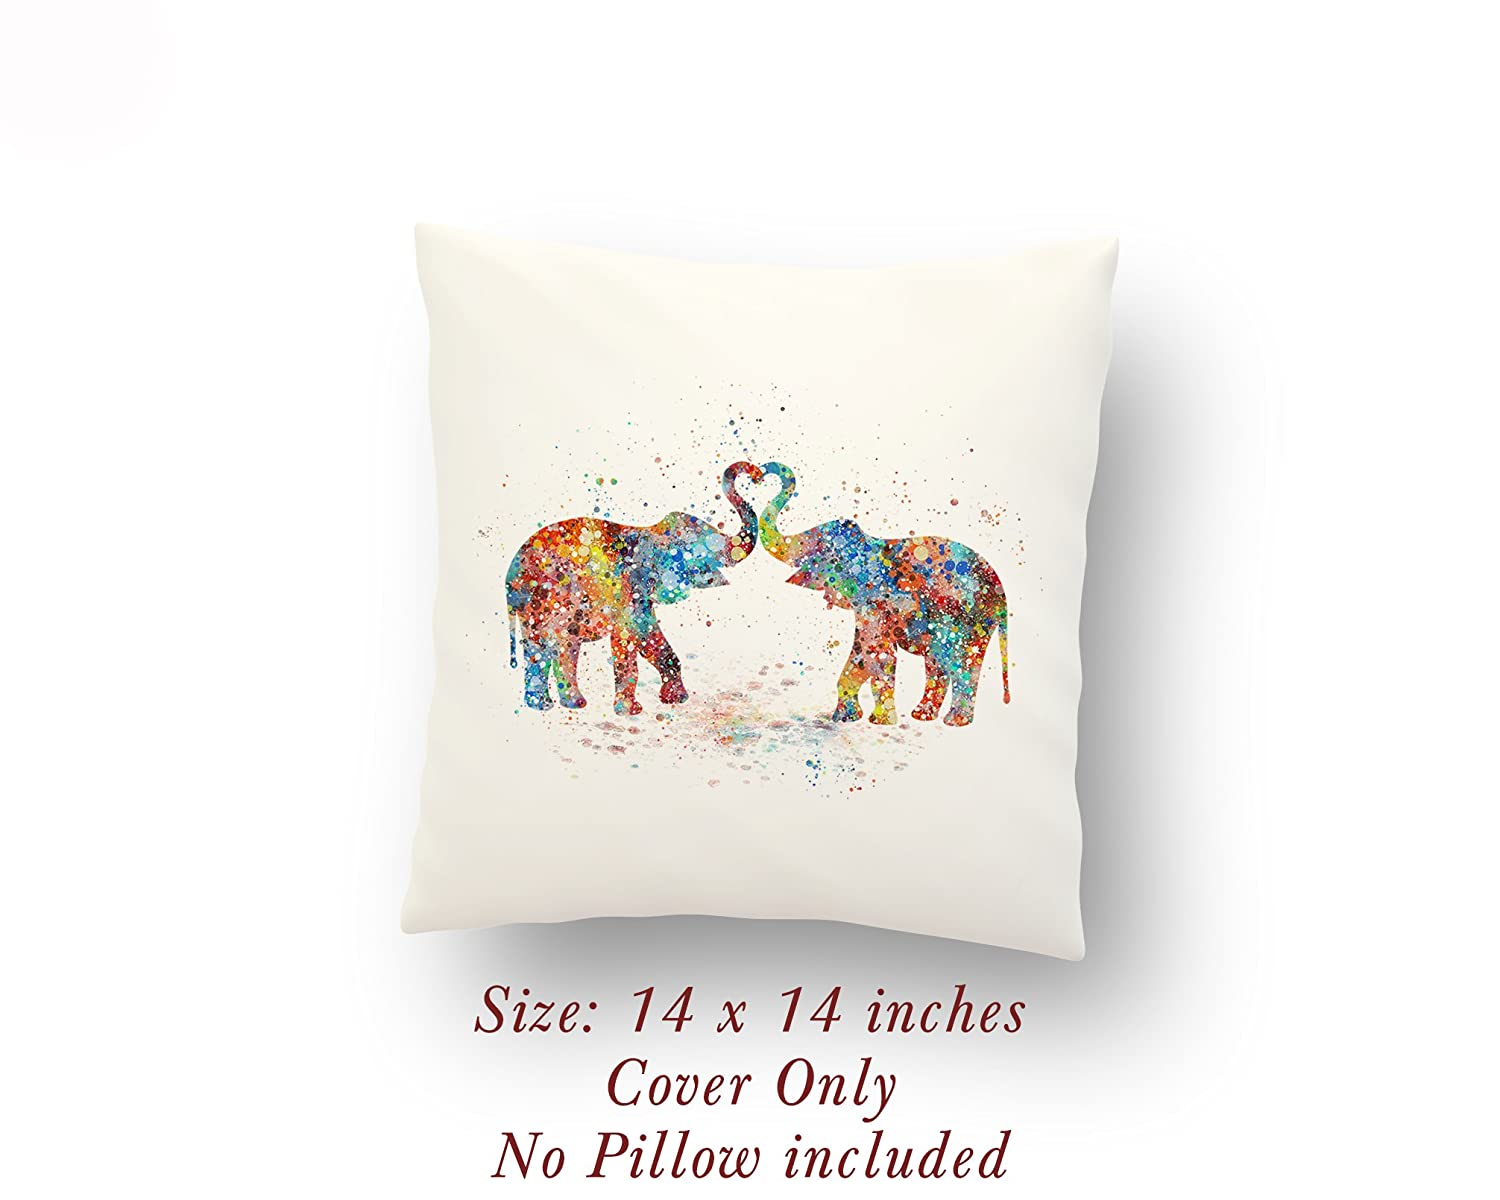 Elephants Love Gift 14 x 14 inches Pillow Cover